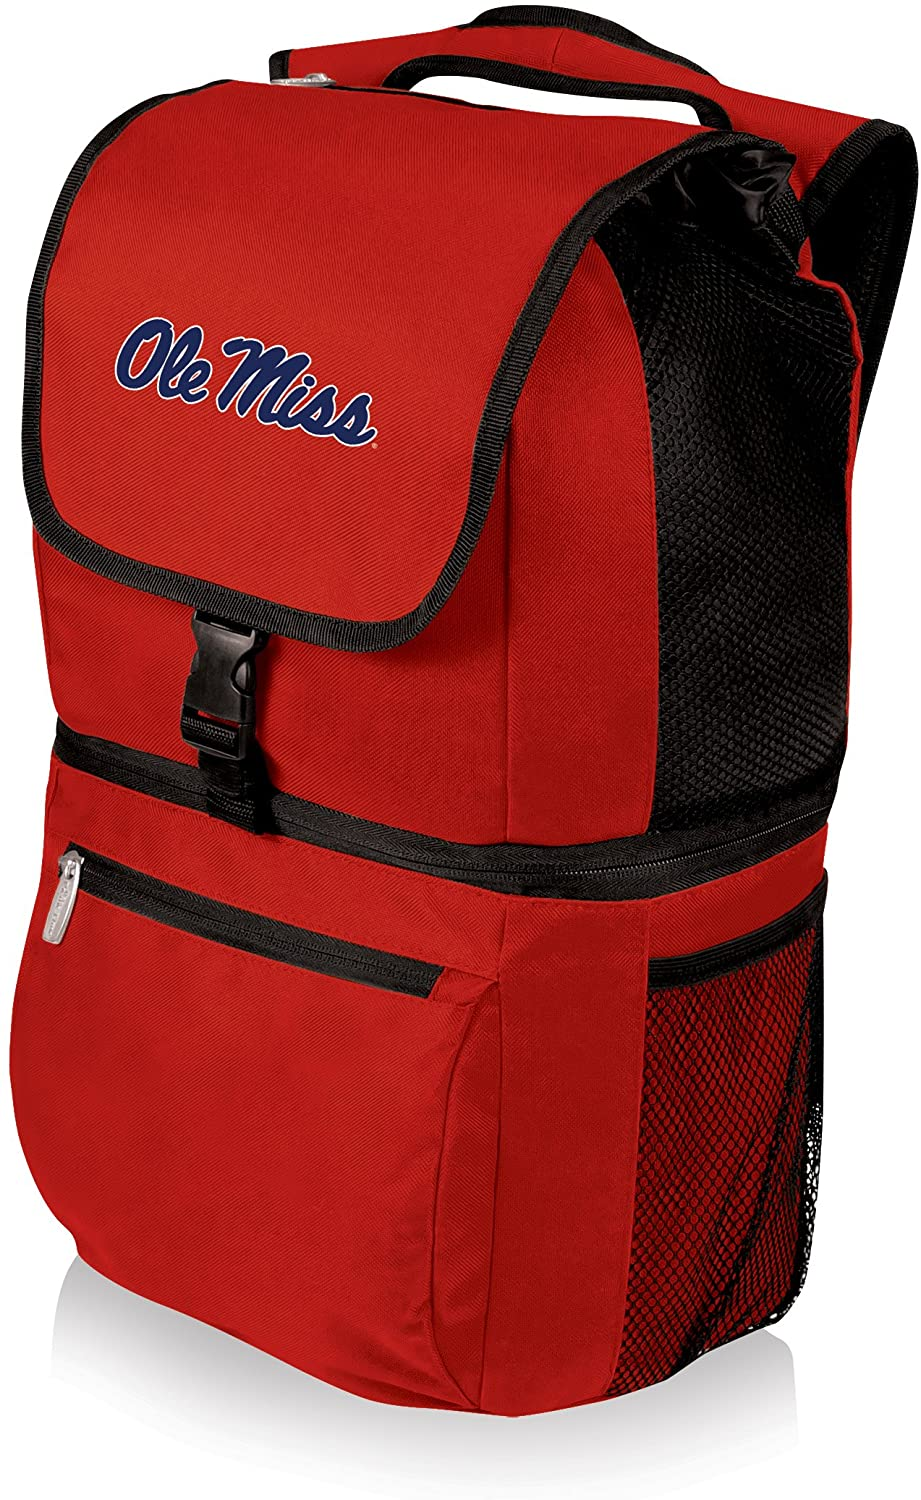 NCAA Mississippi Old Miss Rebels Zuma Insulated Cooler Backpack, Red